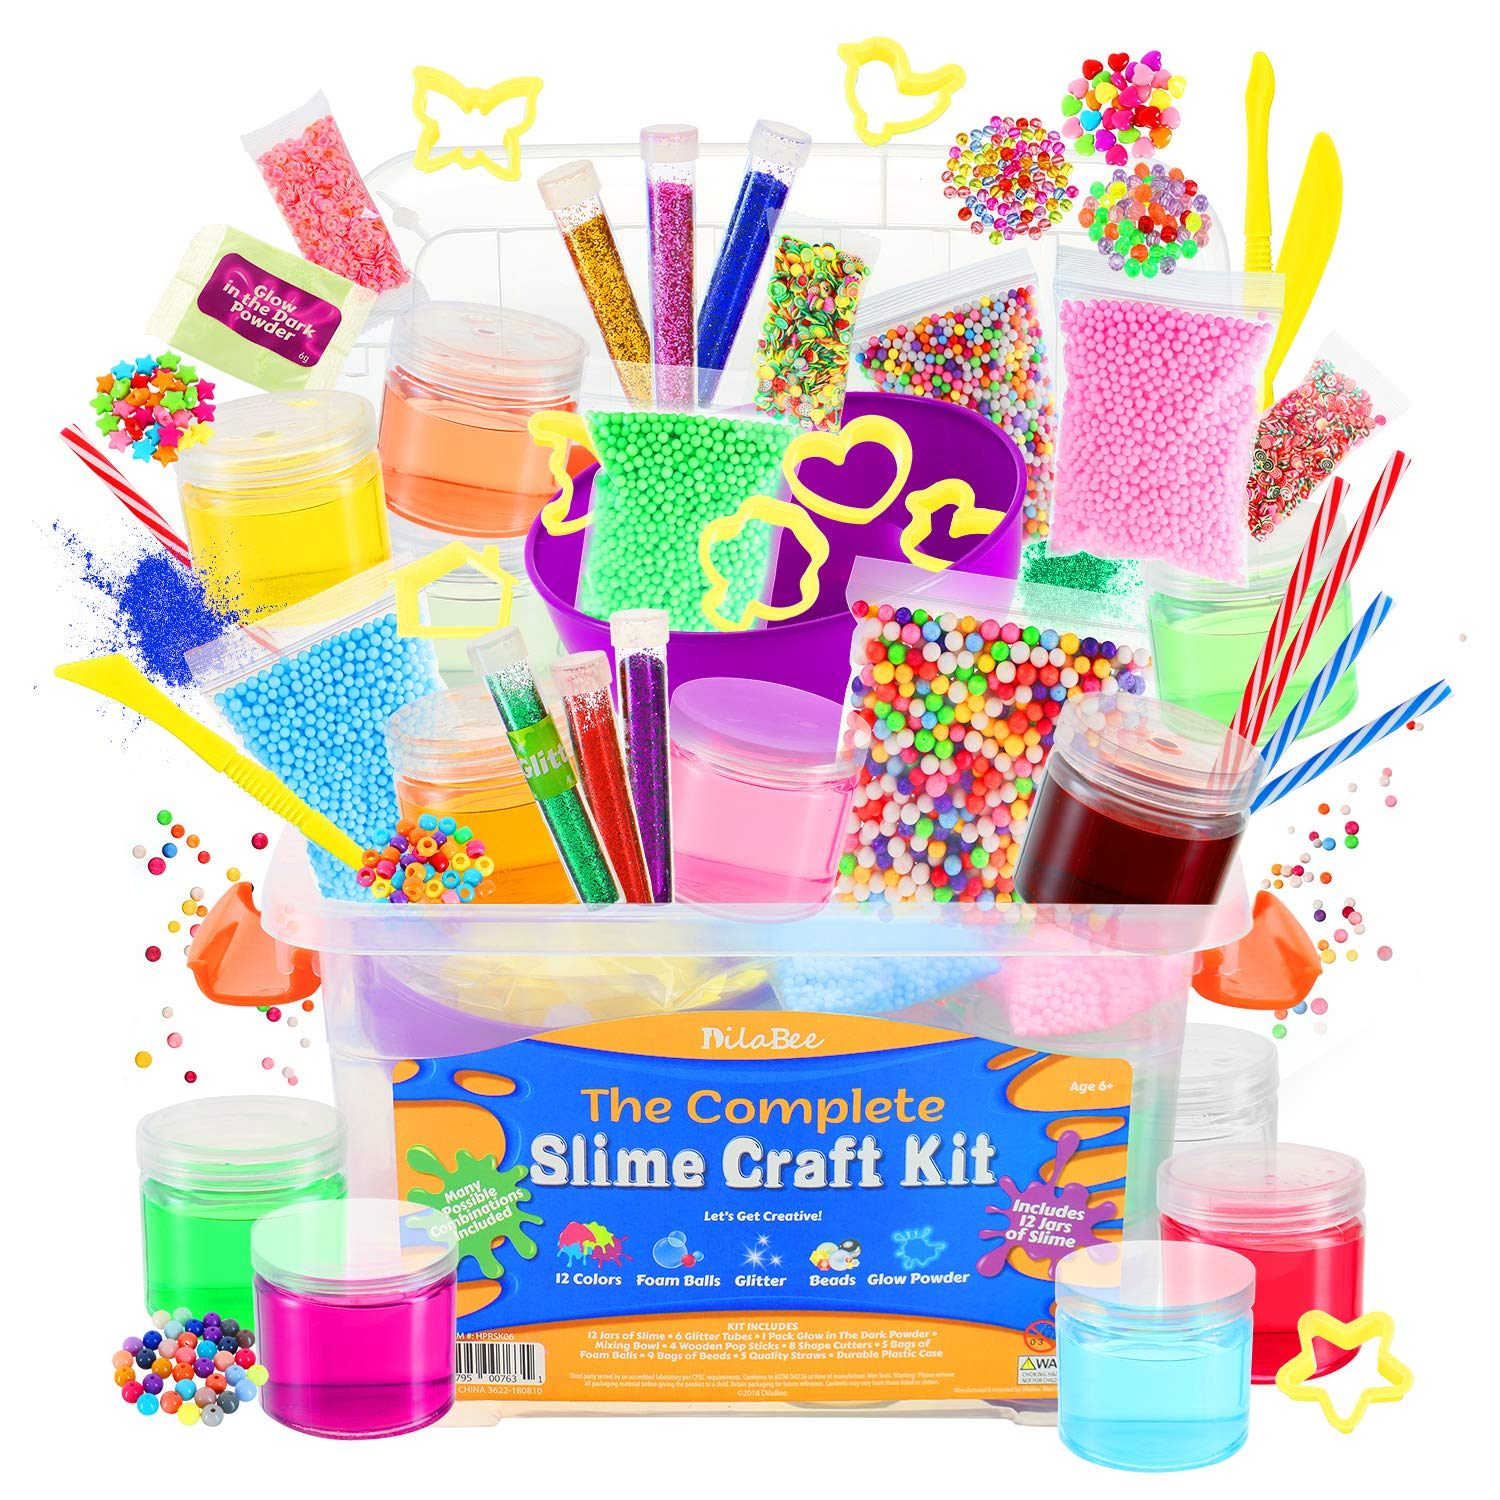 DilaBee Ultimate DIY Slime Making Kit for Girls and Boys - Package Includes 12 Ready Mixed Slime, Glitter, Glow Powder, Charms, Beads + Mixing & Sculpting Tools by DilaBee